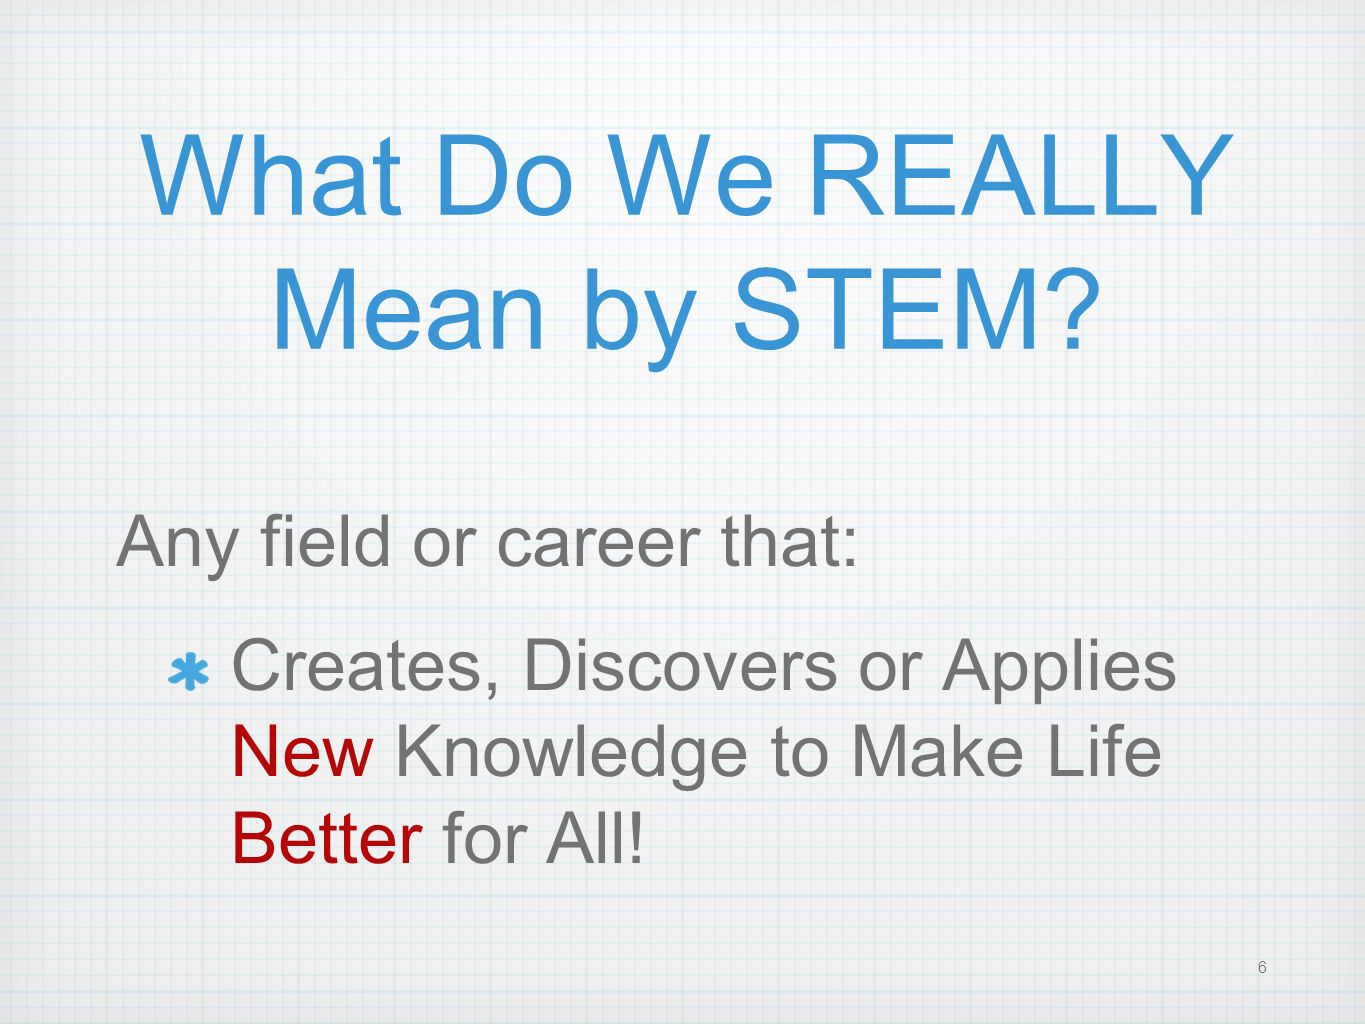 What Do We REALLY Mean by STEM